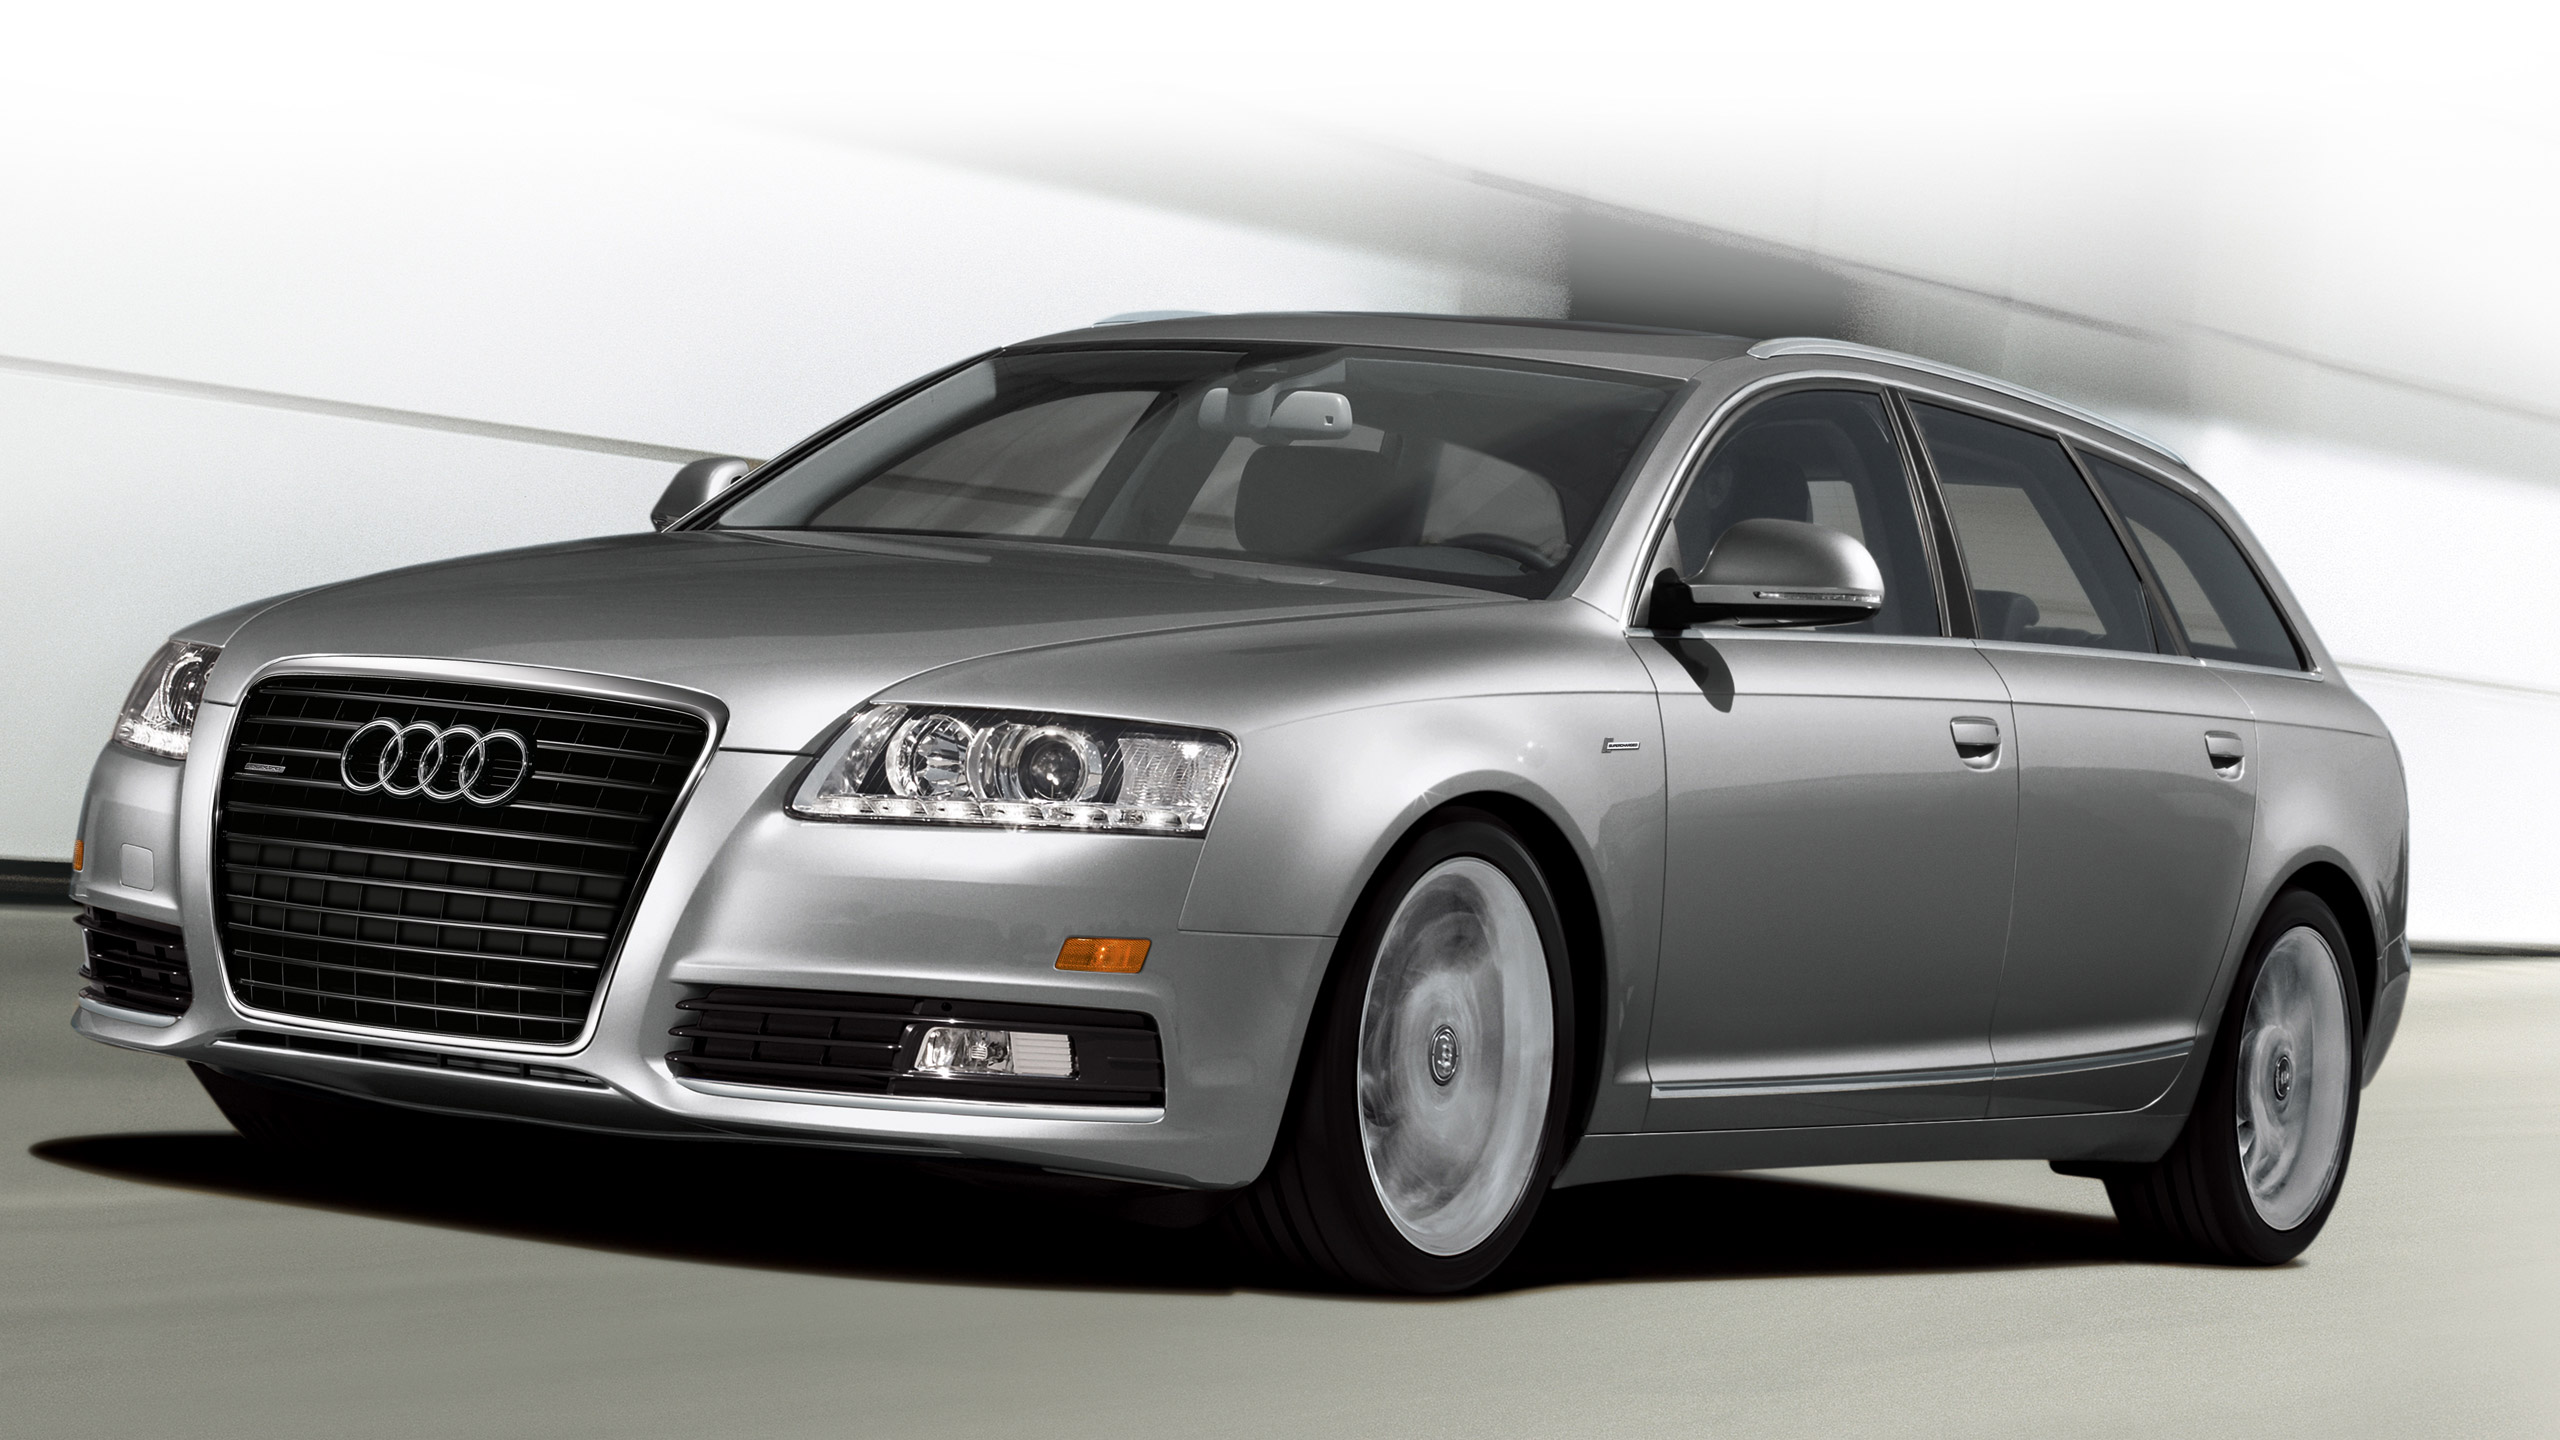 2010 audi s6 avant iii pictures information and specs. Black Bedroom Furniture Sets. Home Design Ideas